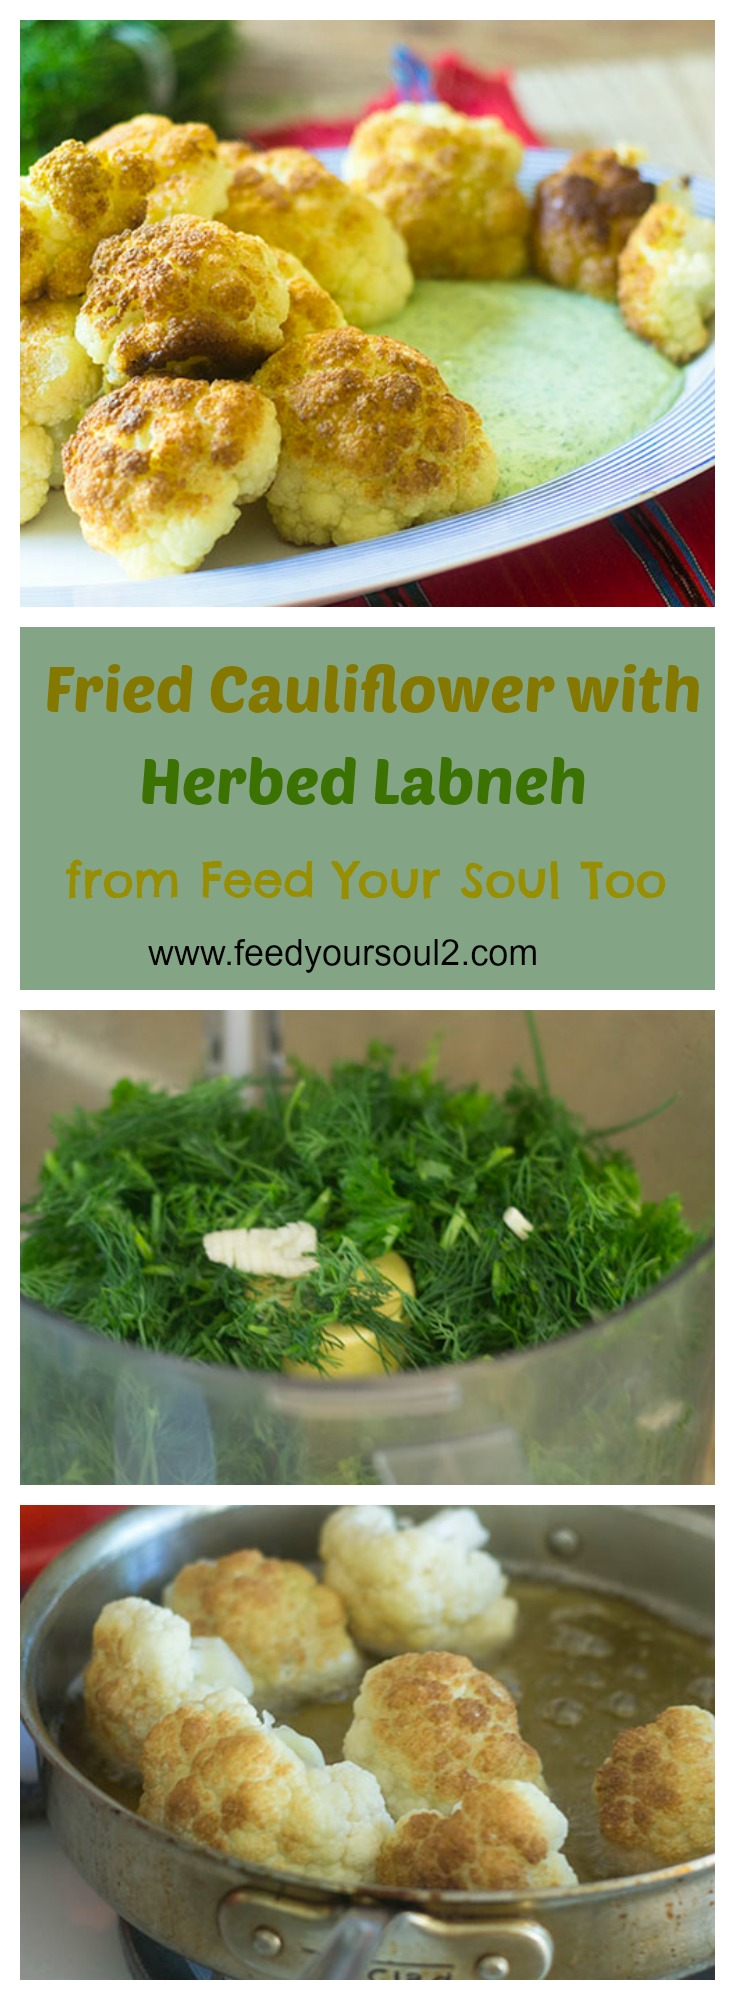 Fried Cauliflower with Herbed Labneh #cauliflower #lvegetarian #middleeasternfood | feedyoursoul2.com